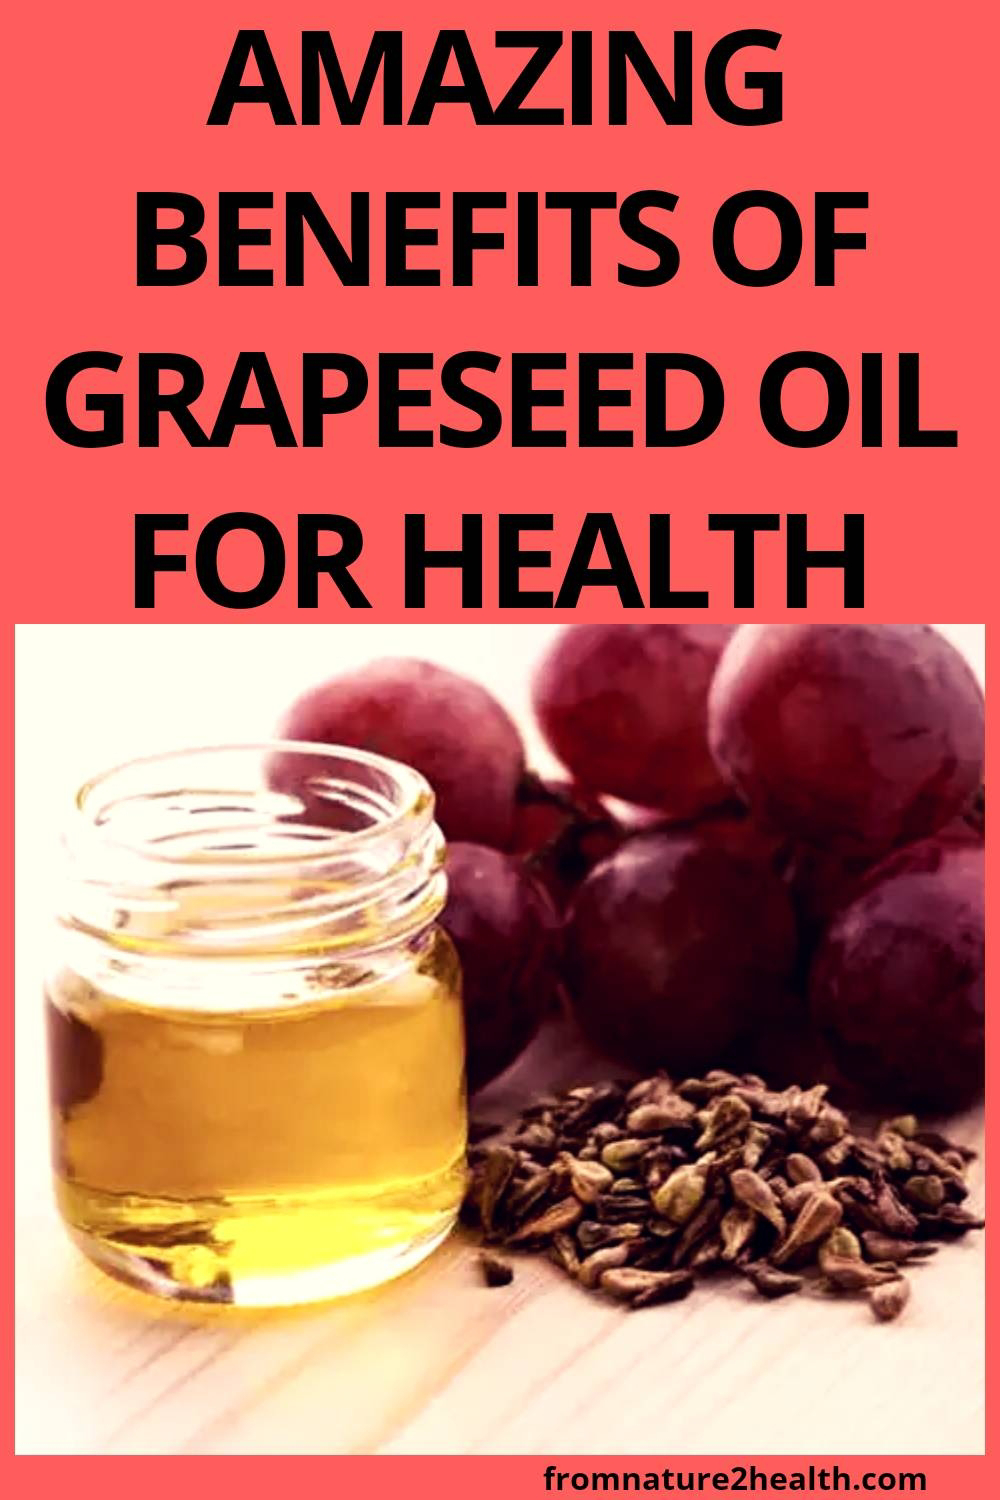 Amazing Benefits of Grapeseed Oil for Health